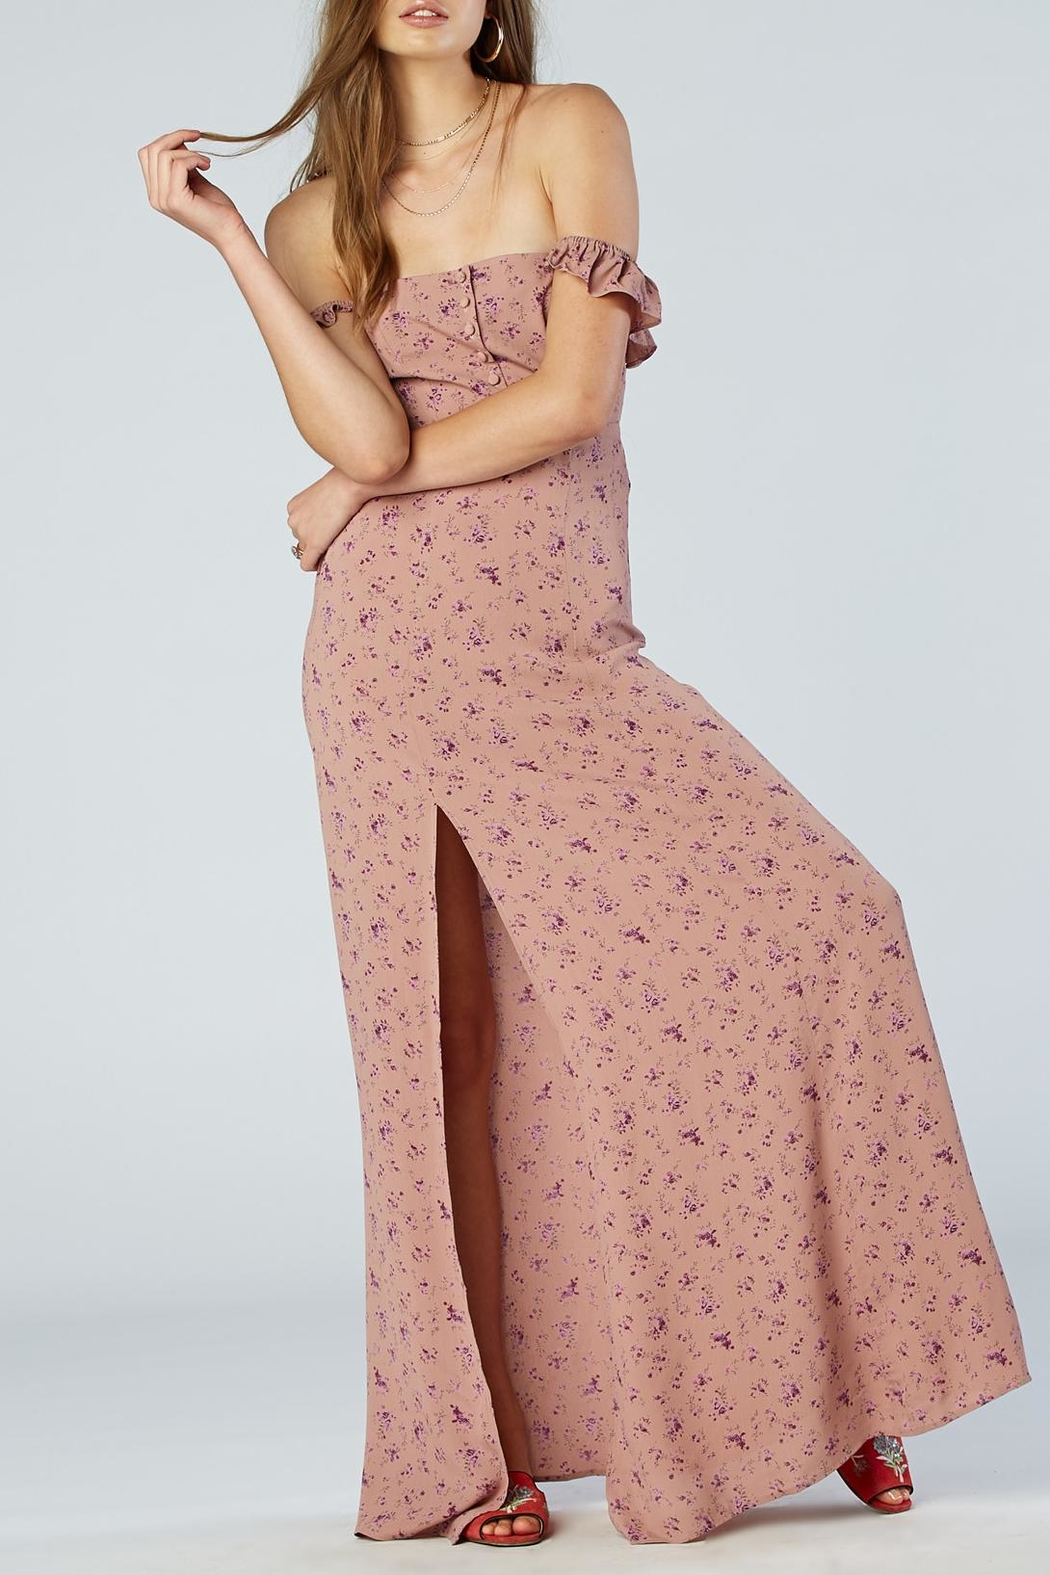 Flynn Skye Bardot Maxi Dress From San Diego By Dolcetti Boutique